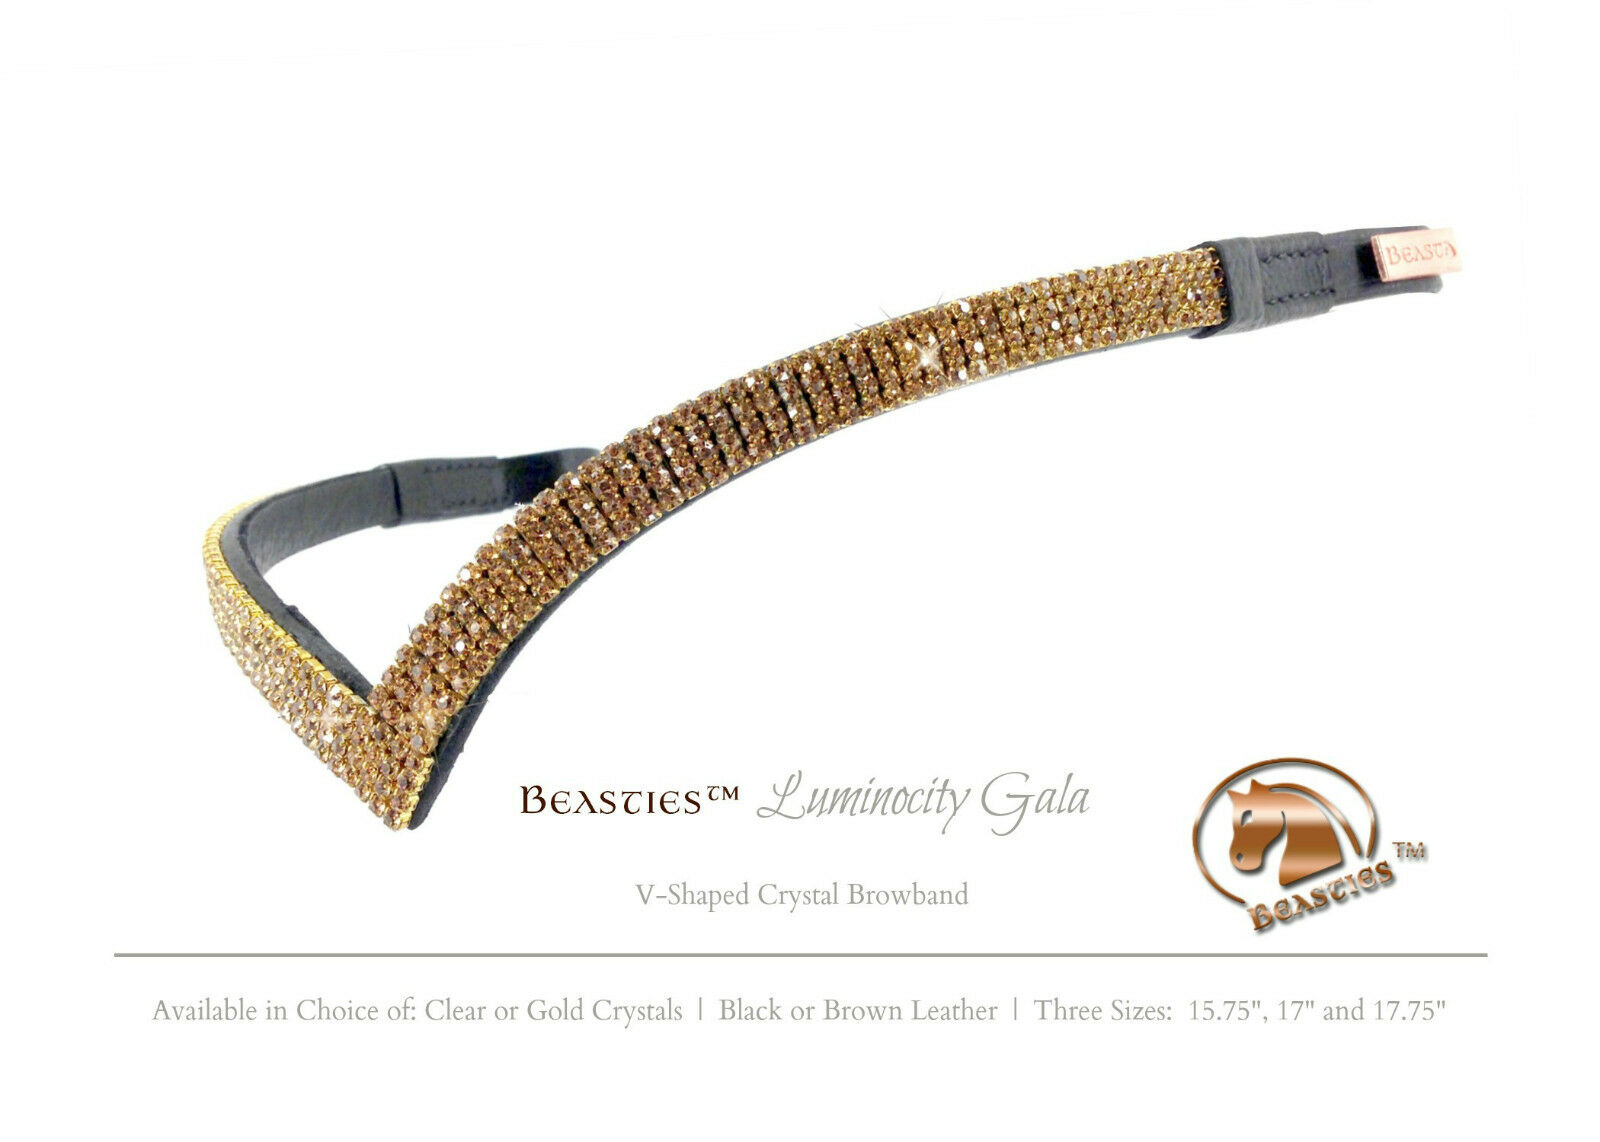 Gold/Blk. Luminocity V Dressage Shape Crystal Dressage V Bridle Browband Größe: Horse 15.75